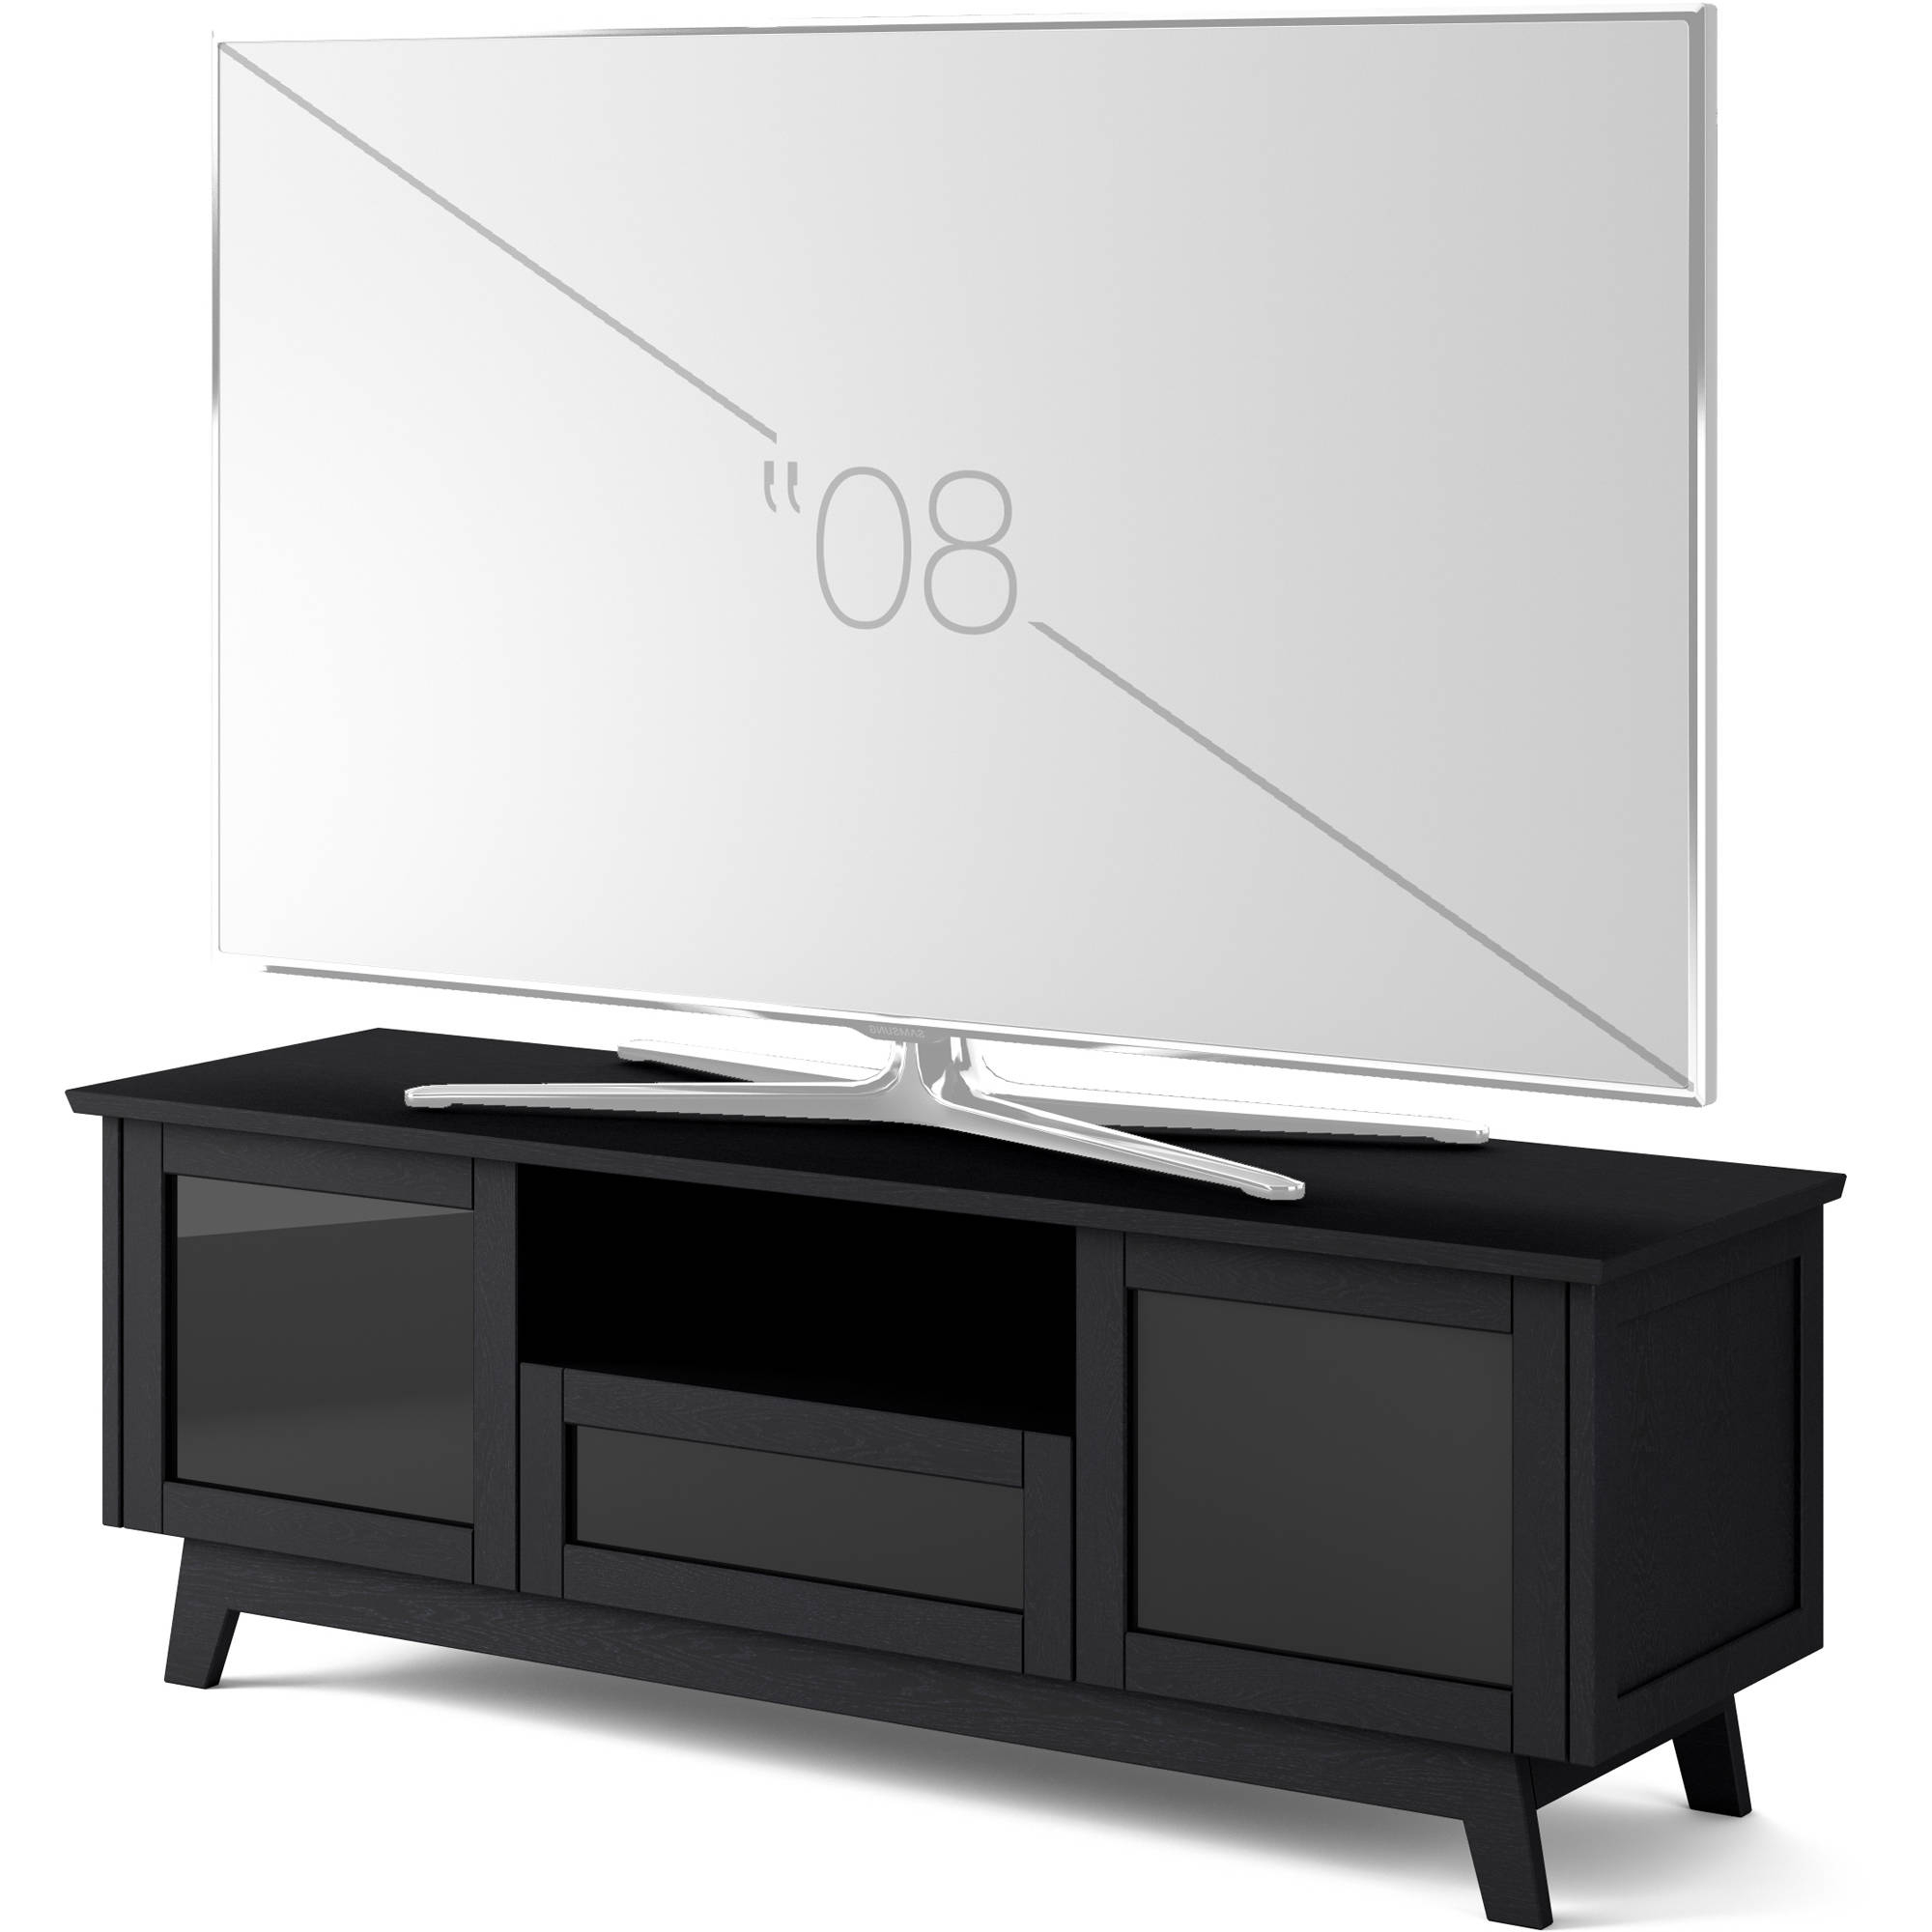 Newest Salamander Designs Audio/video Cabinet In Black Sdav5/7225/bo In Solar Refinement Sideboards (Gallery 16 of 20)